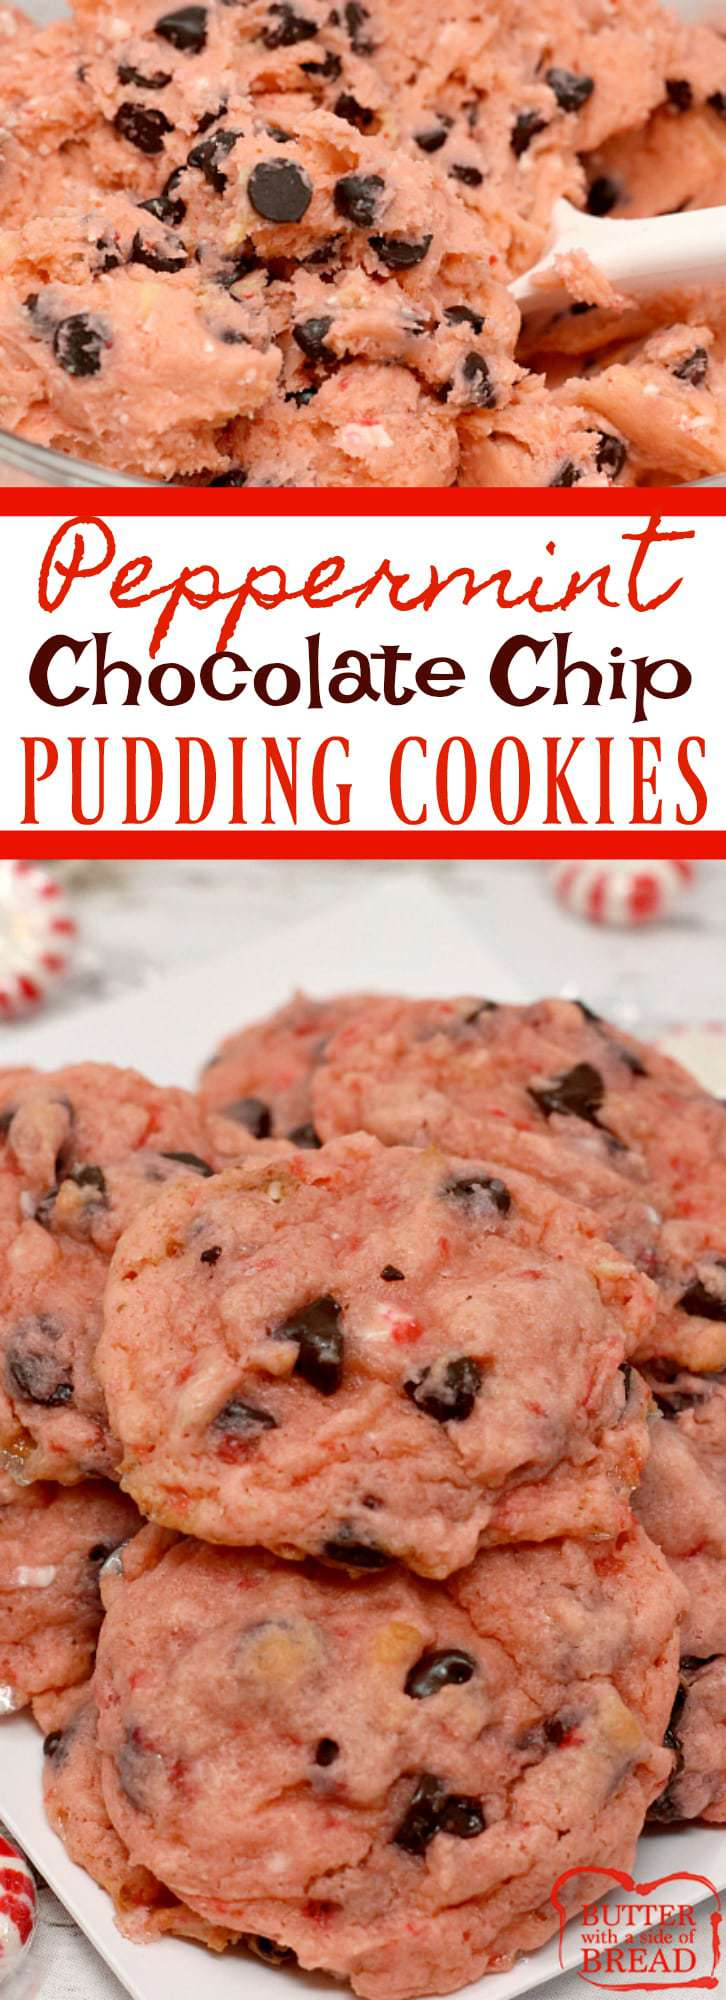 Peppermint Chocolate Chip Pudding Cookies are made with crushed candy canes, pudding mix, peppermint extract and chocolate chips - perfect for the holidays!